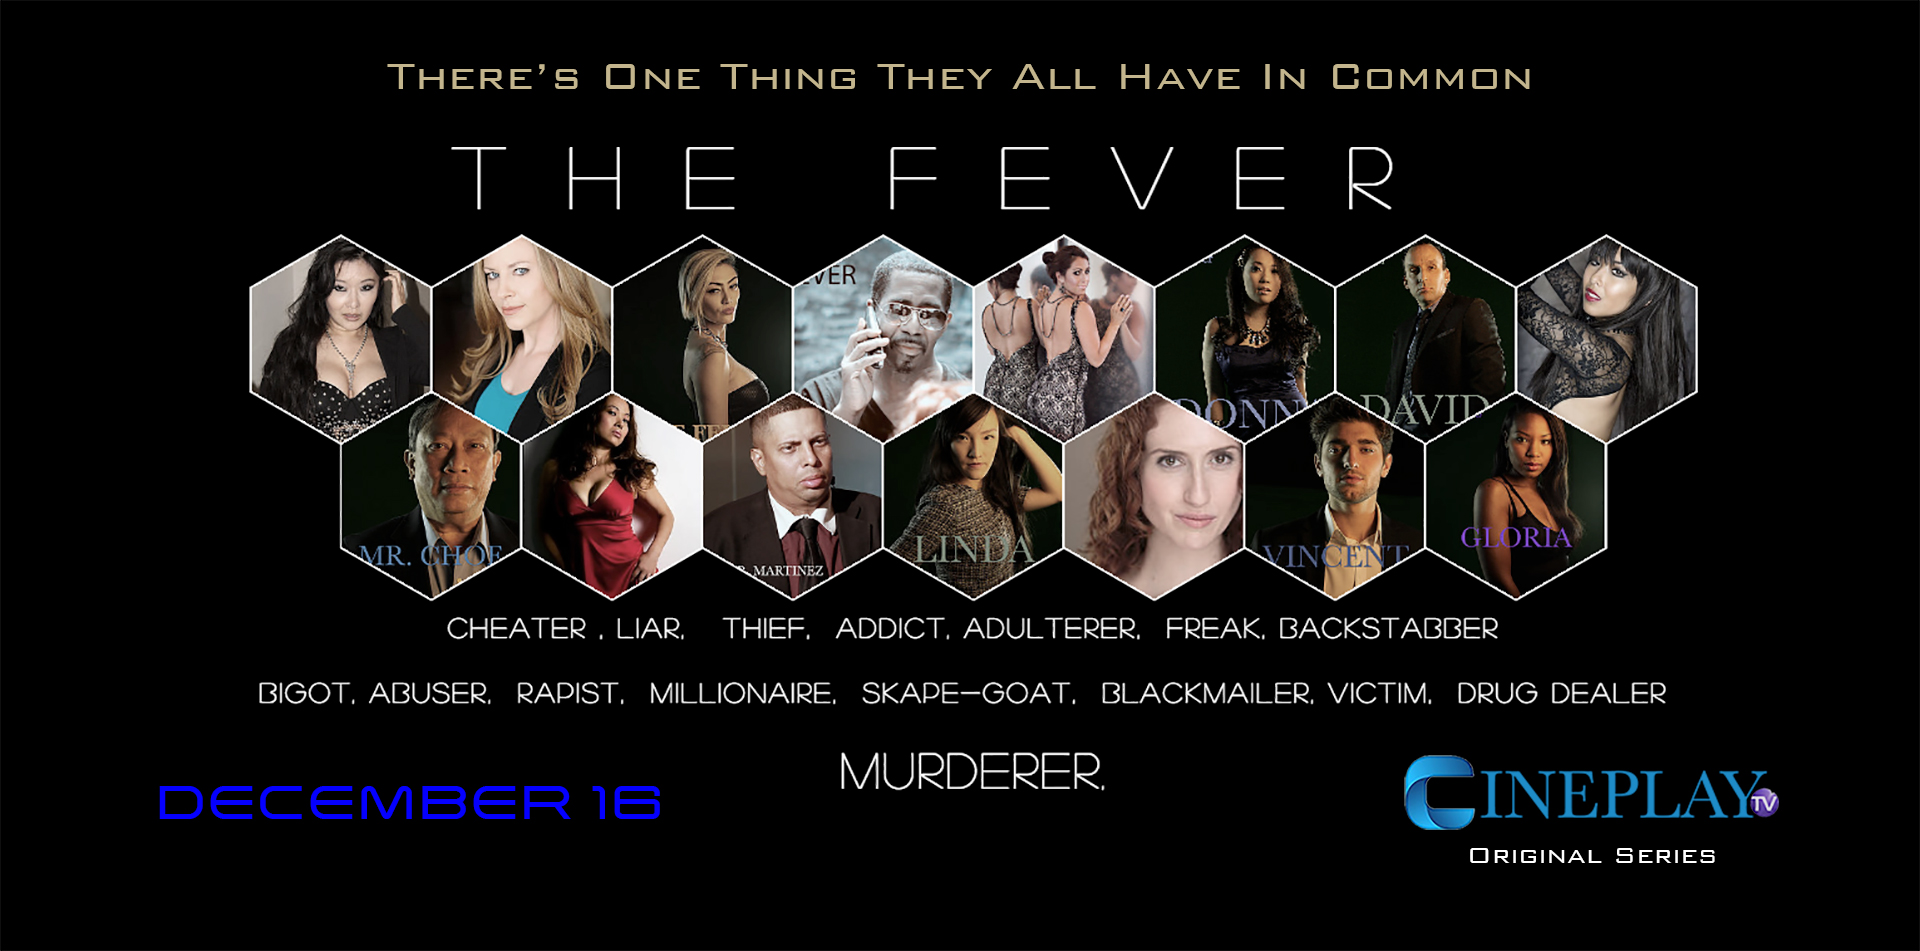 The Cast of The Fever